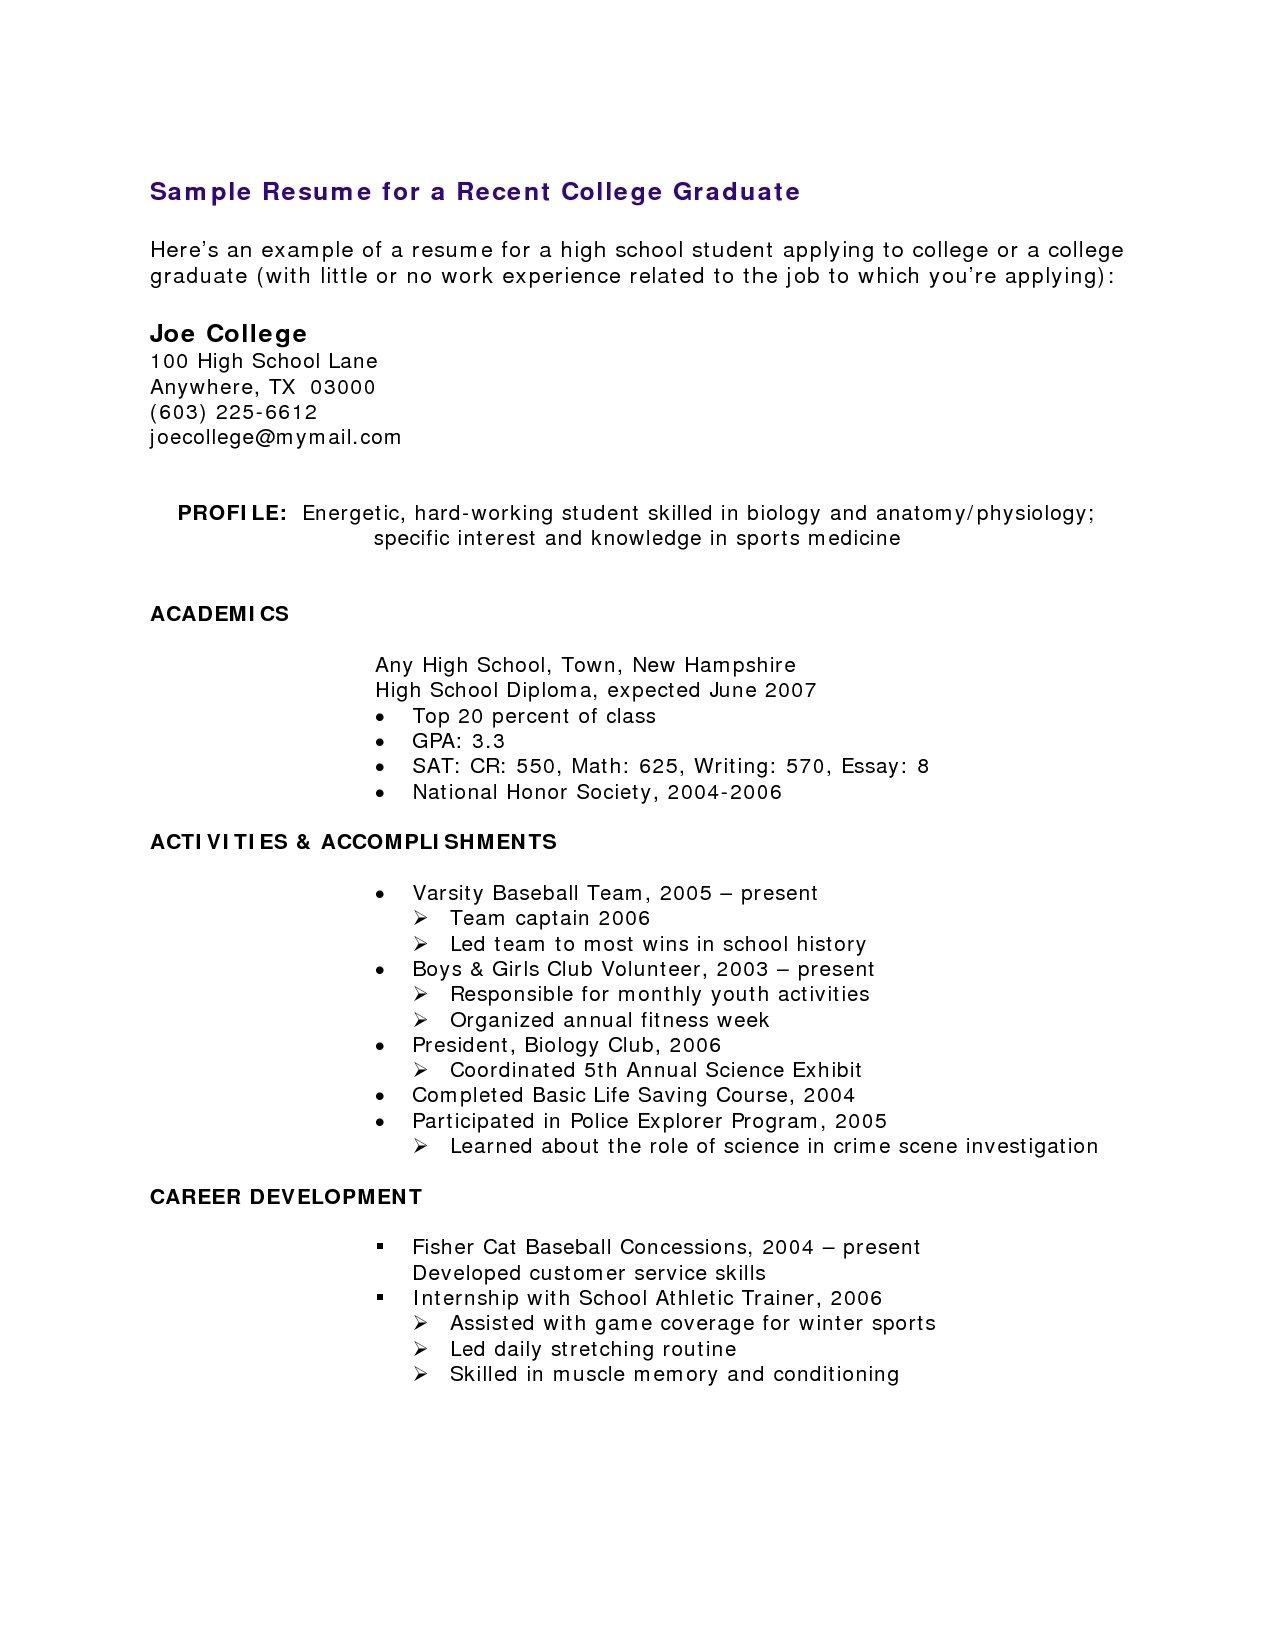 How To Write A Resume With No Work Experience Adorable Resume Examples With No Work Experience  Resume  Pinterest .